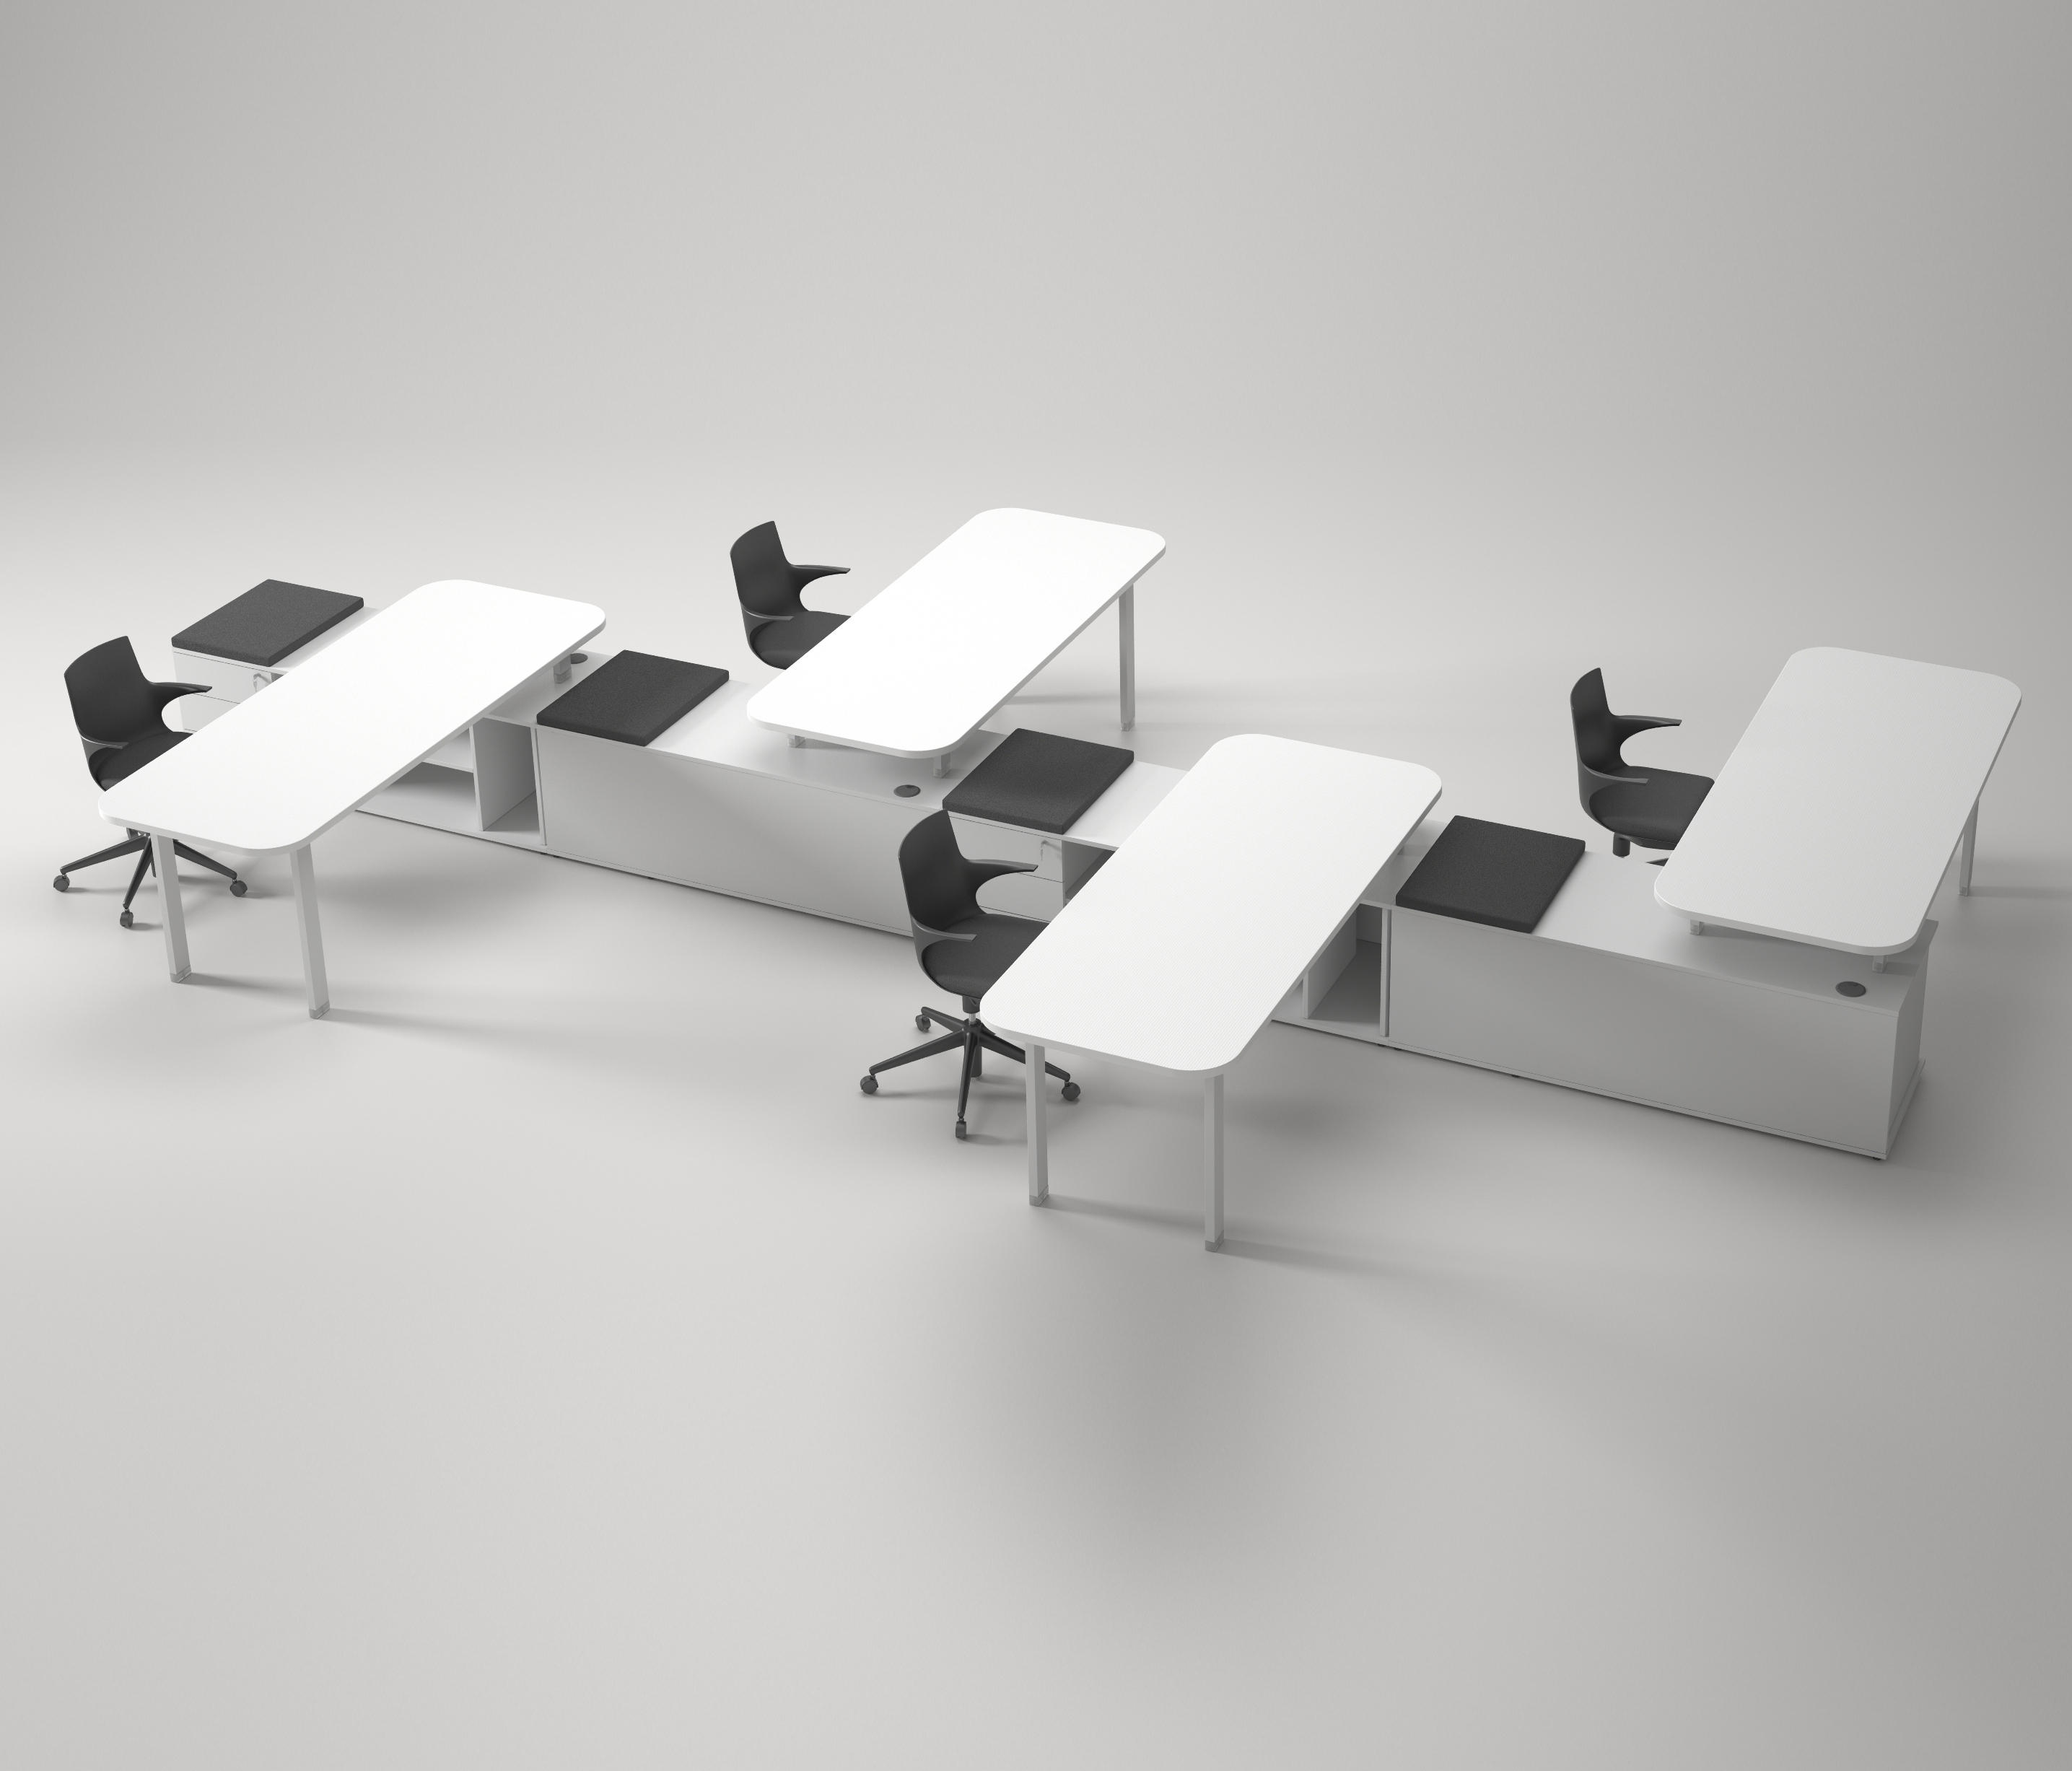 4-PERSONS WORKSTATIONS - High quality designer 4-PERSONS ...